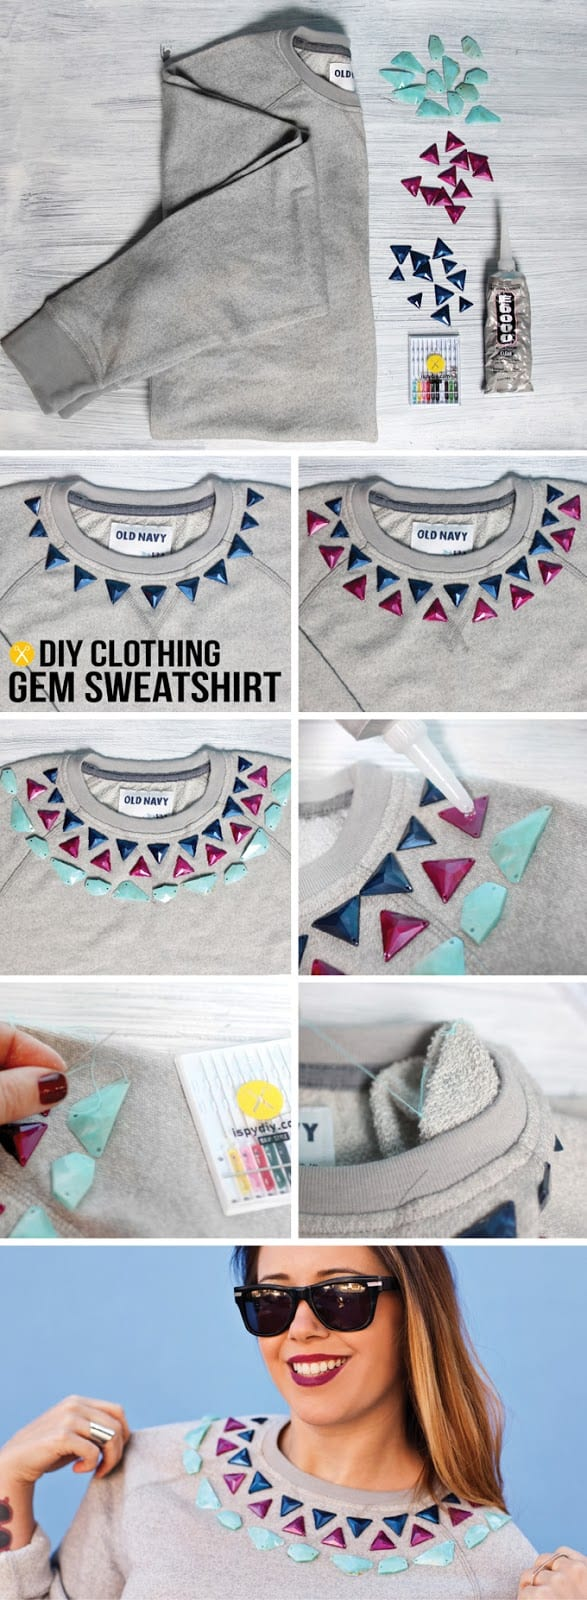 DIY-–-GEM-EMBELLISHED-SWEATSHIRT Top 50 DIY Winter Fashion Projects With Simple Tutorials